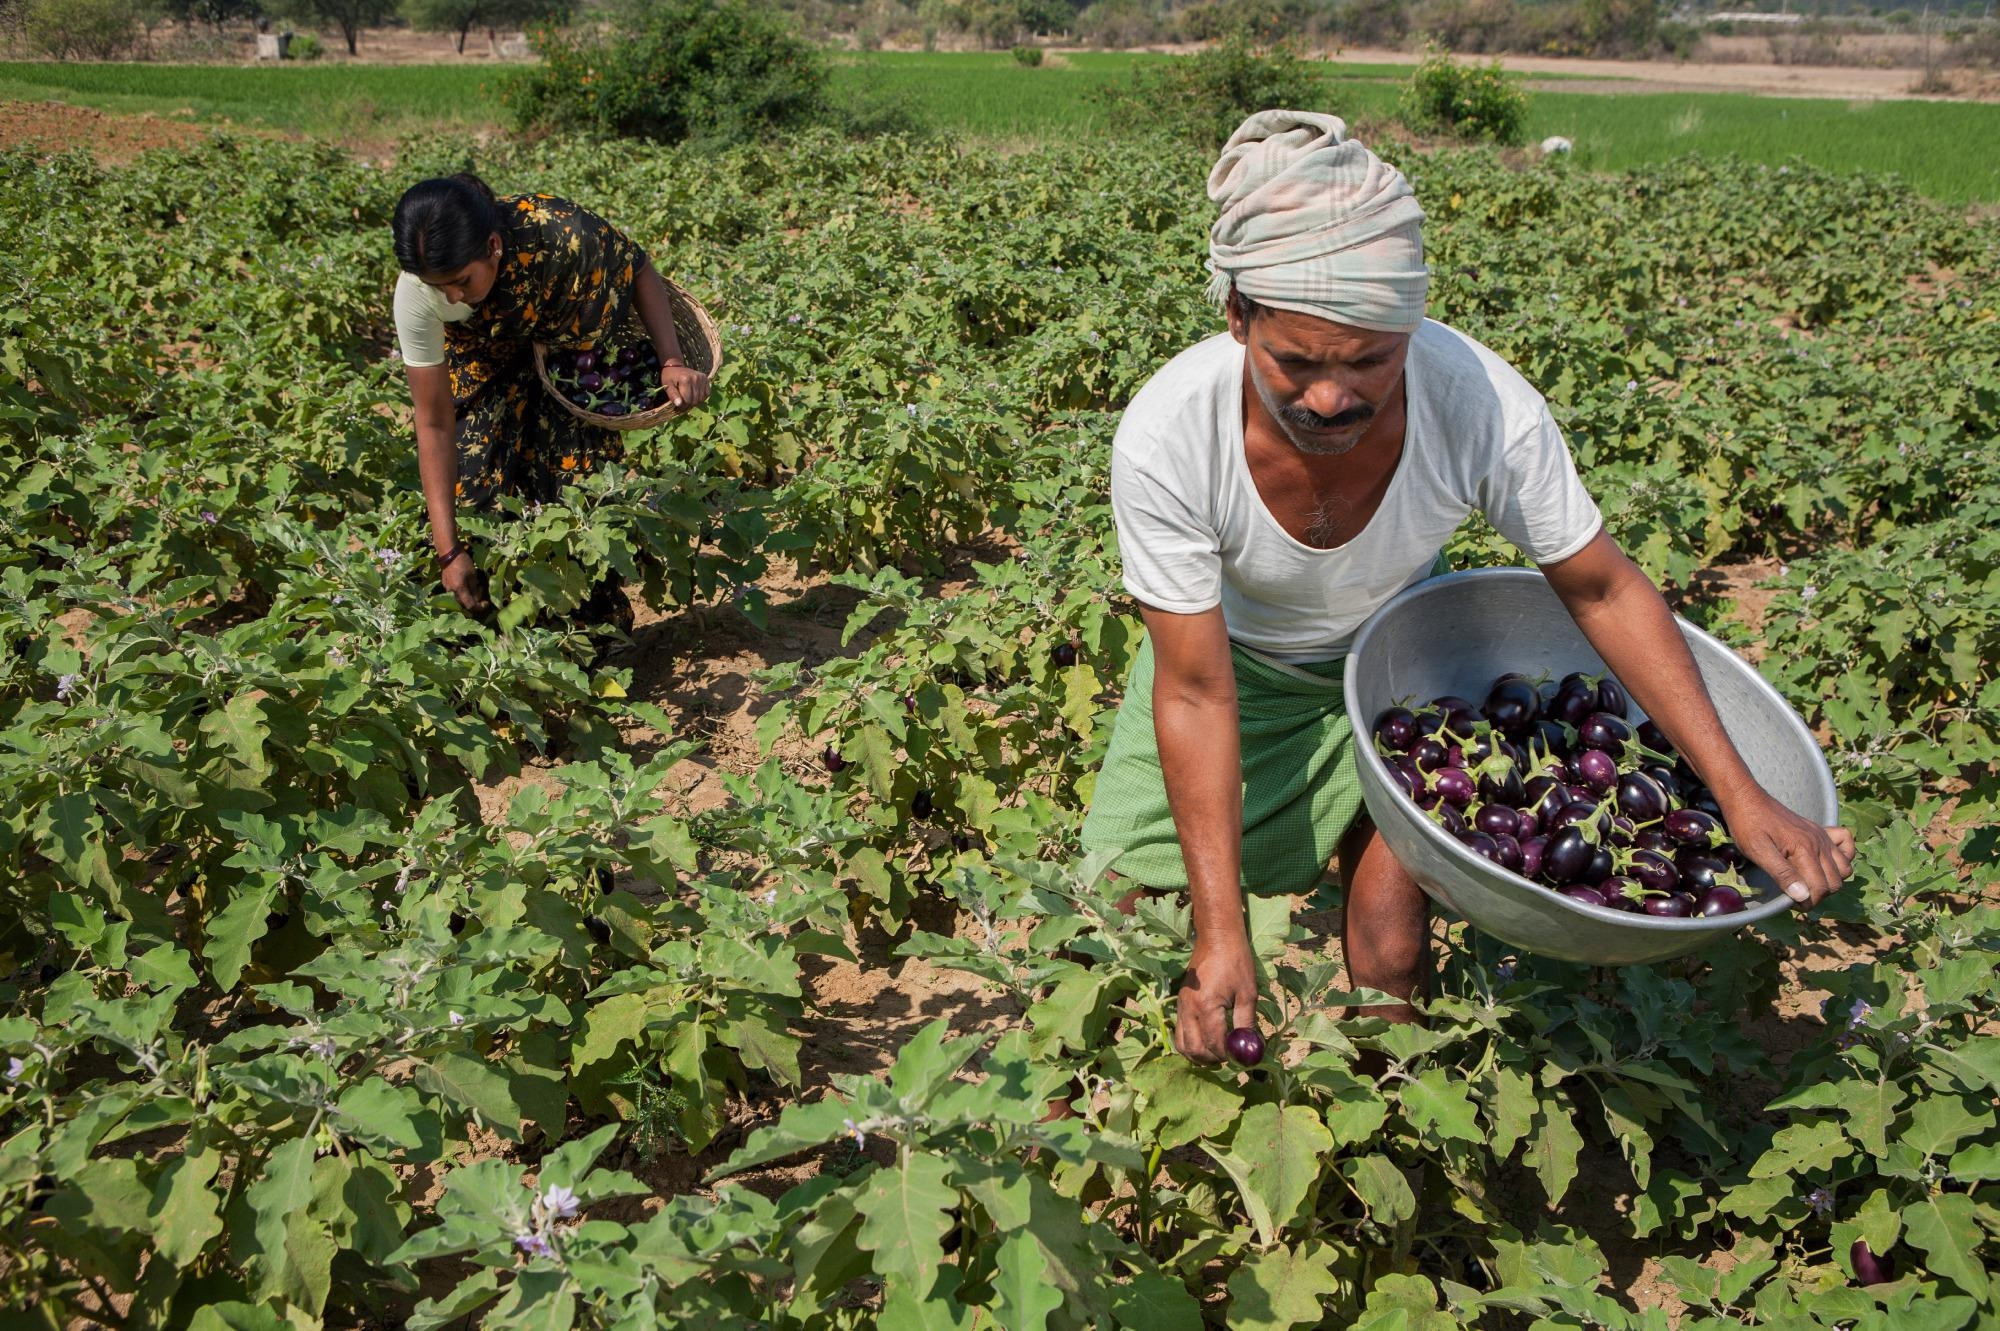 New Technologies to Emerge to Ensure Food Security in Sub-Saharan Africa, South Asia